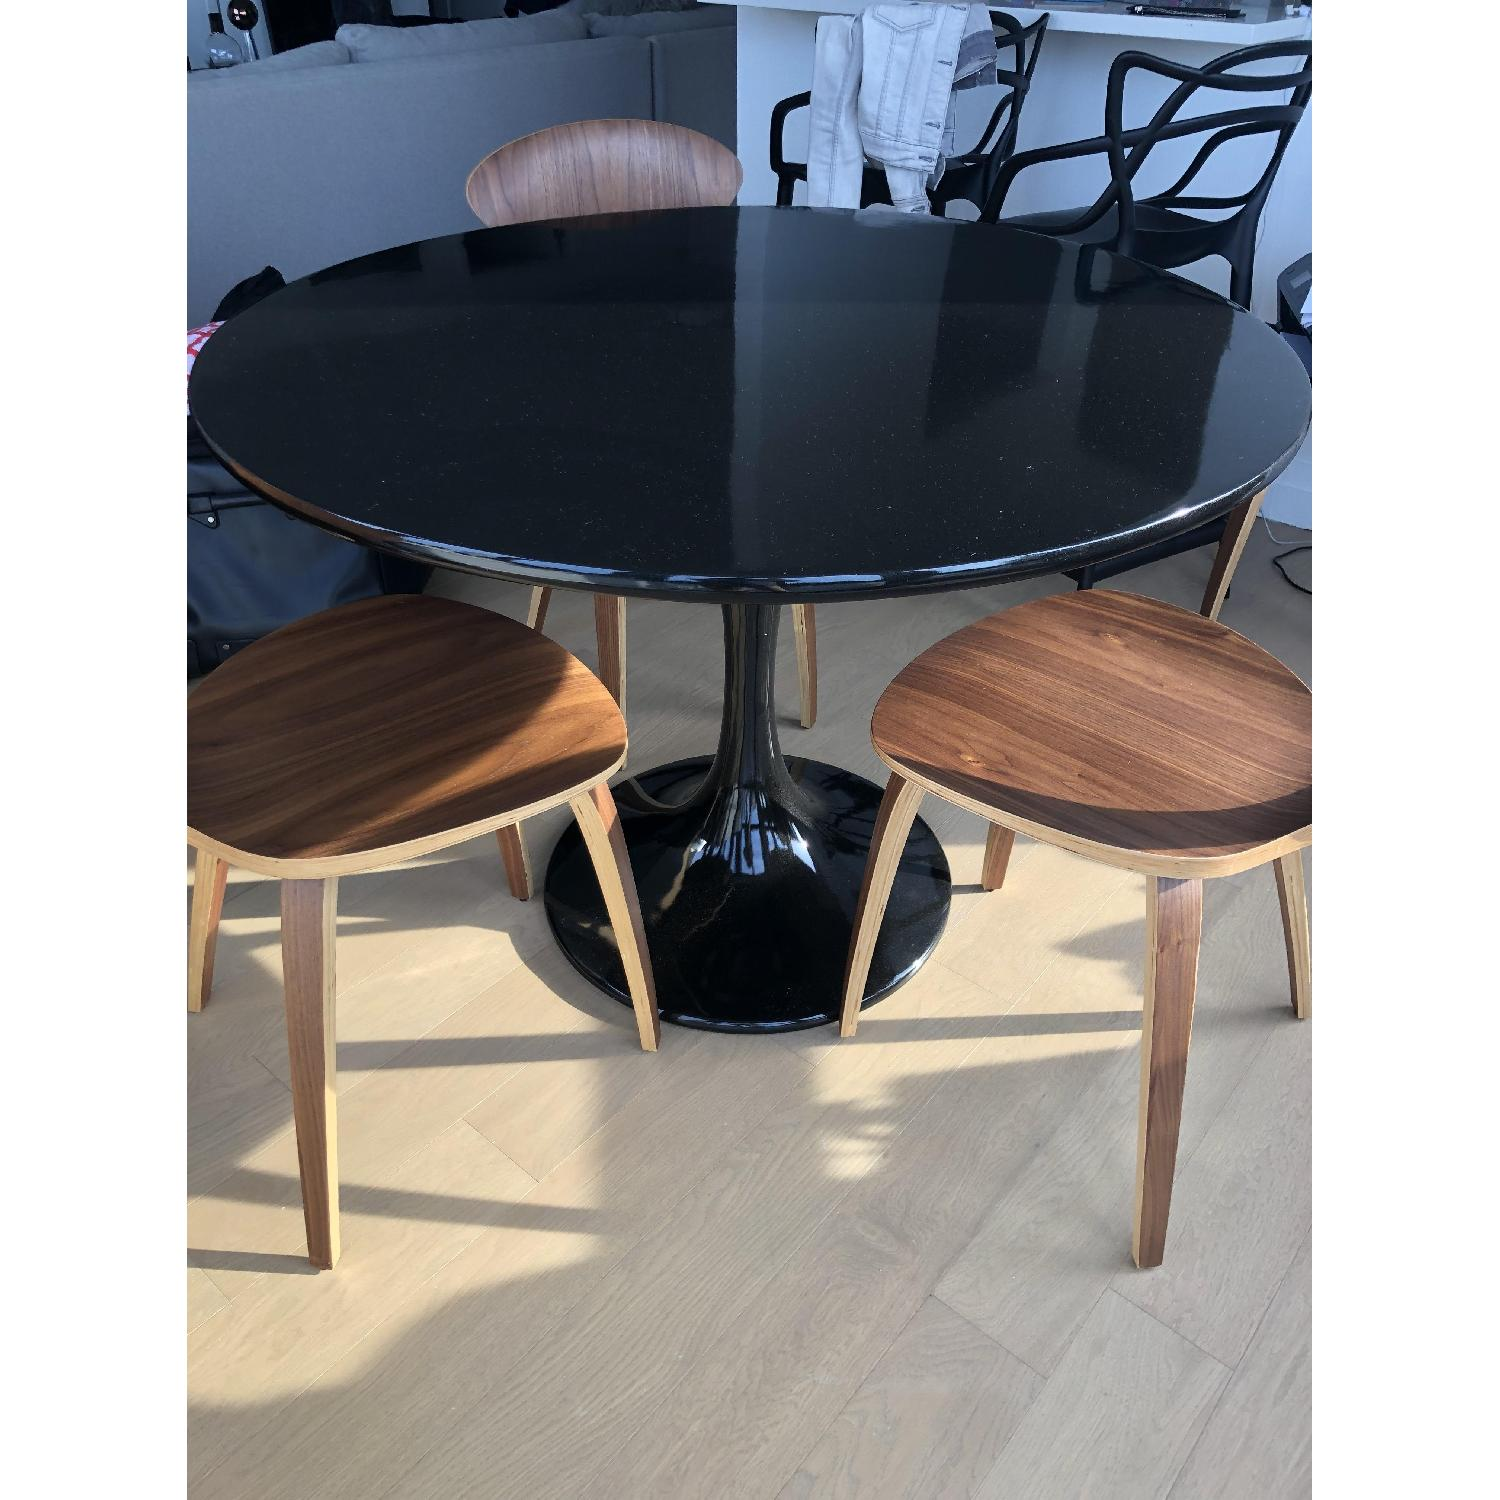 Fine Mod Imports Dining Table - image-3